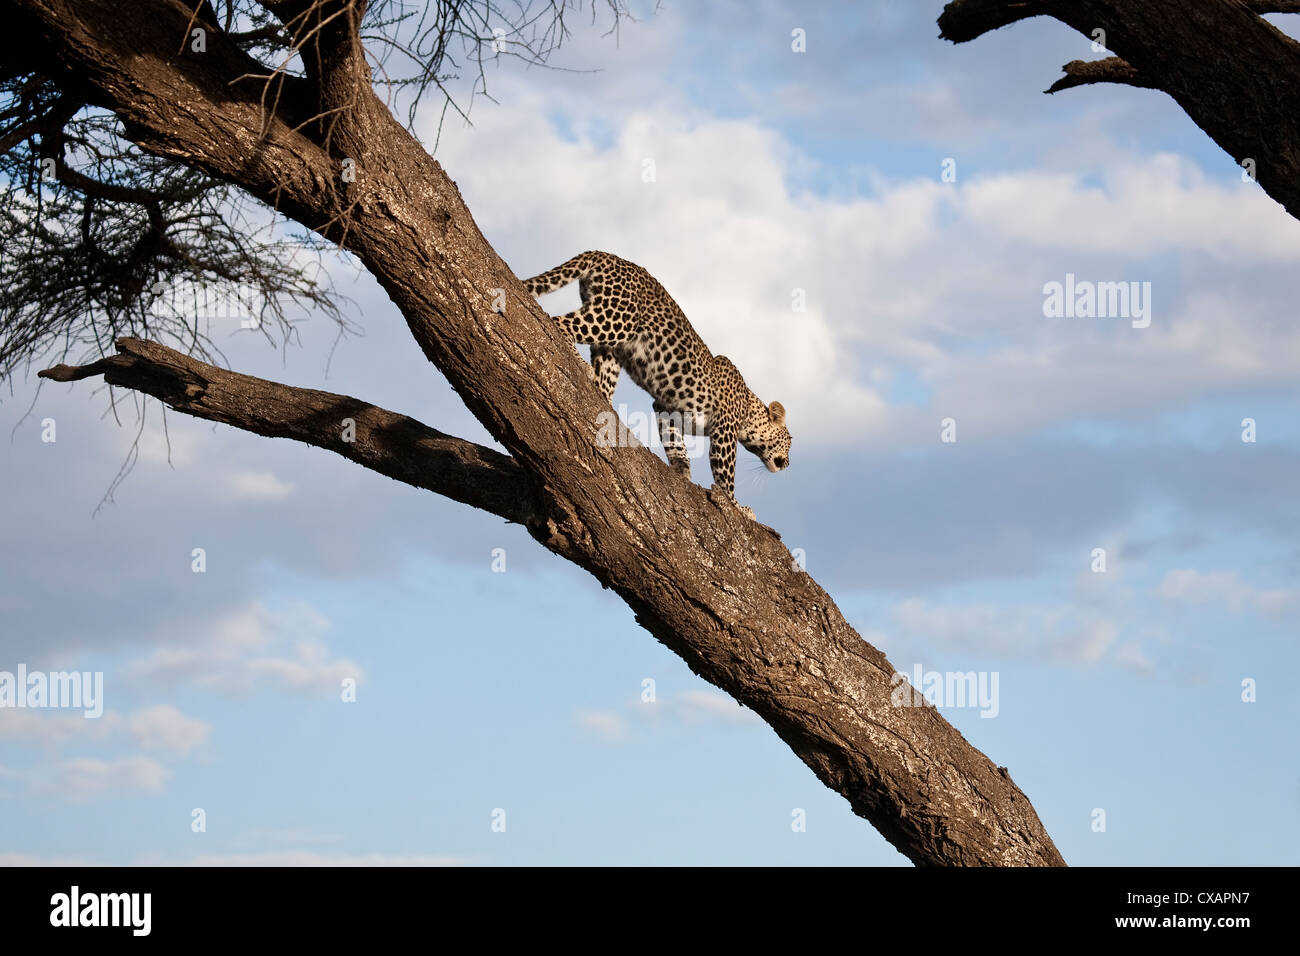 Leopard Panthera pardus descending the trunk of a large tree in Tanzania - Stock Image